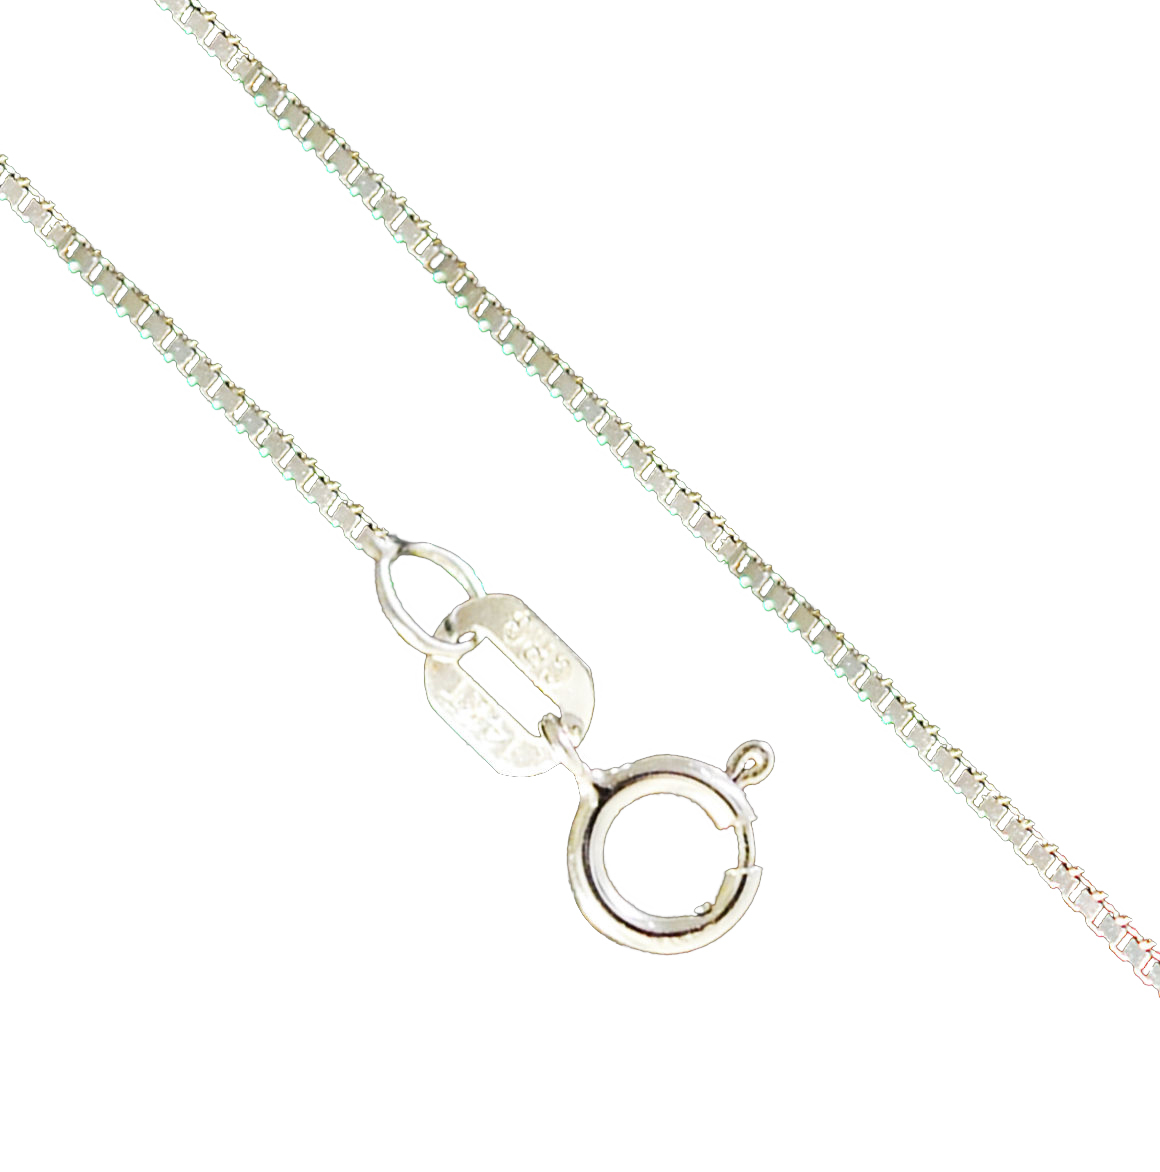 14K White Gold 0.8mm Box Necklace Link Spring Clasp (16 Inches)